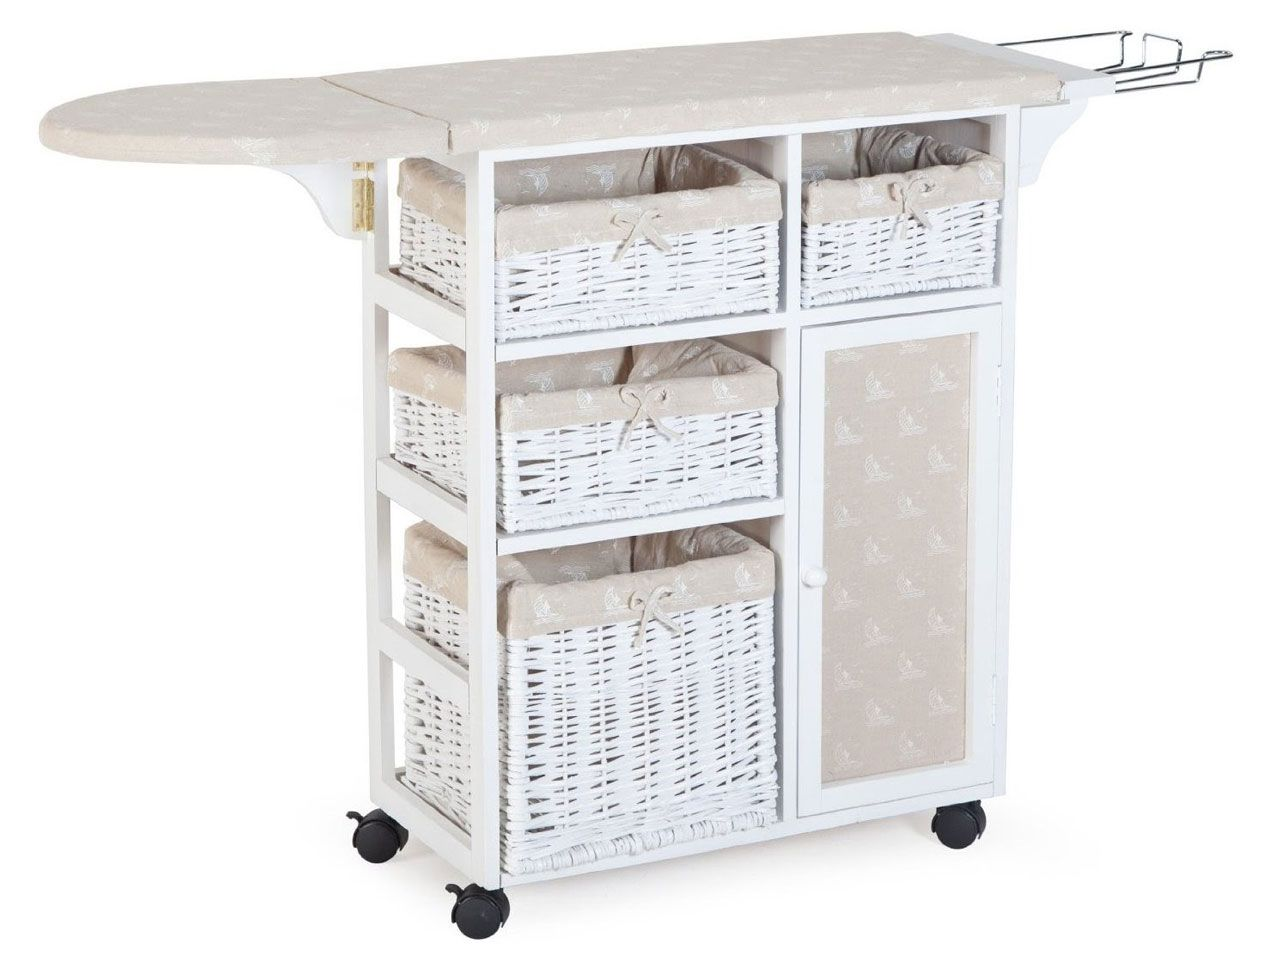 Ironing Board Storage Cabinet